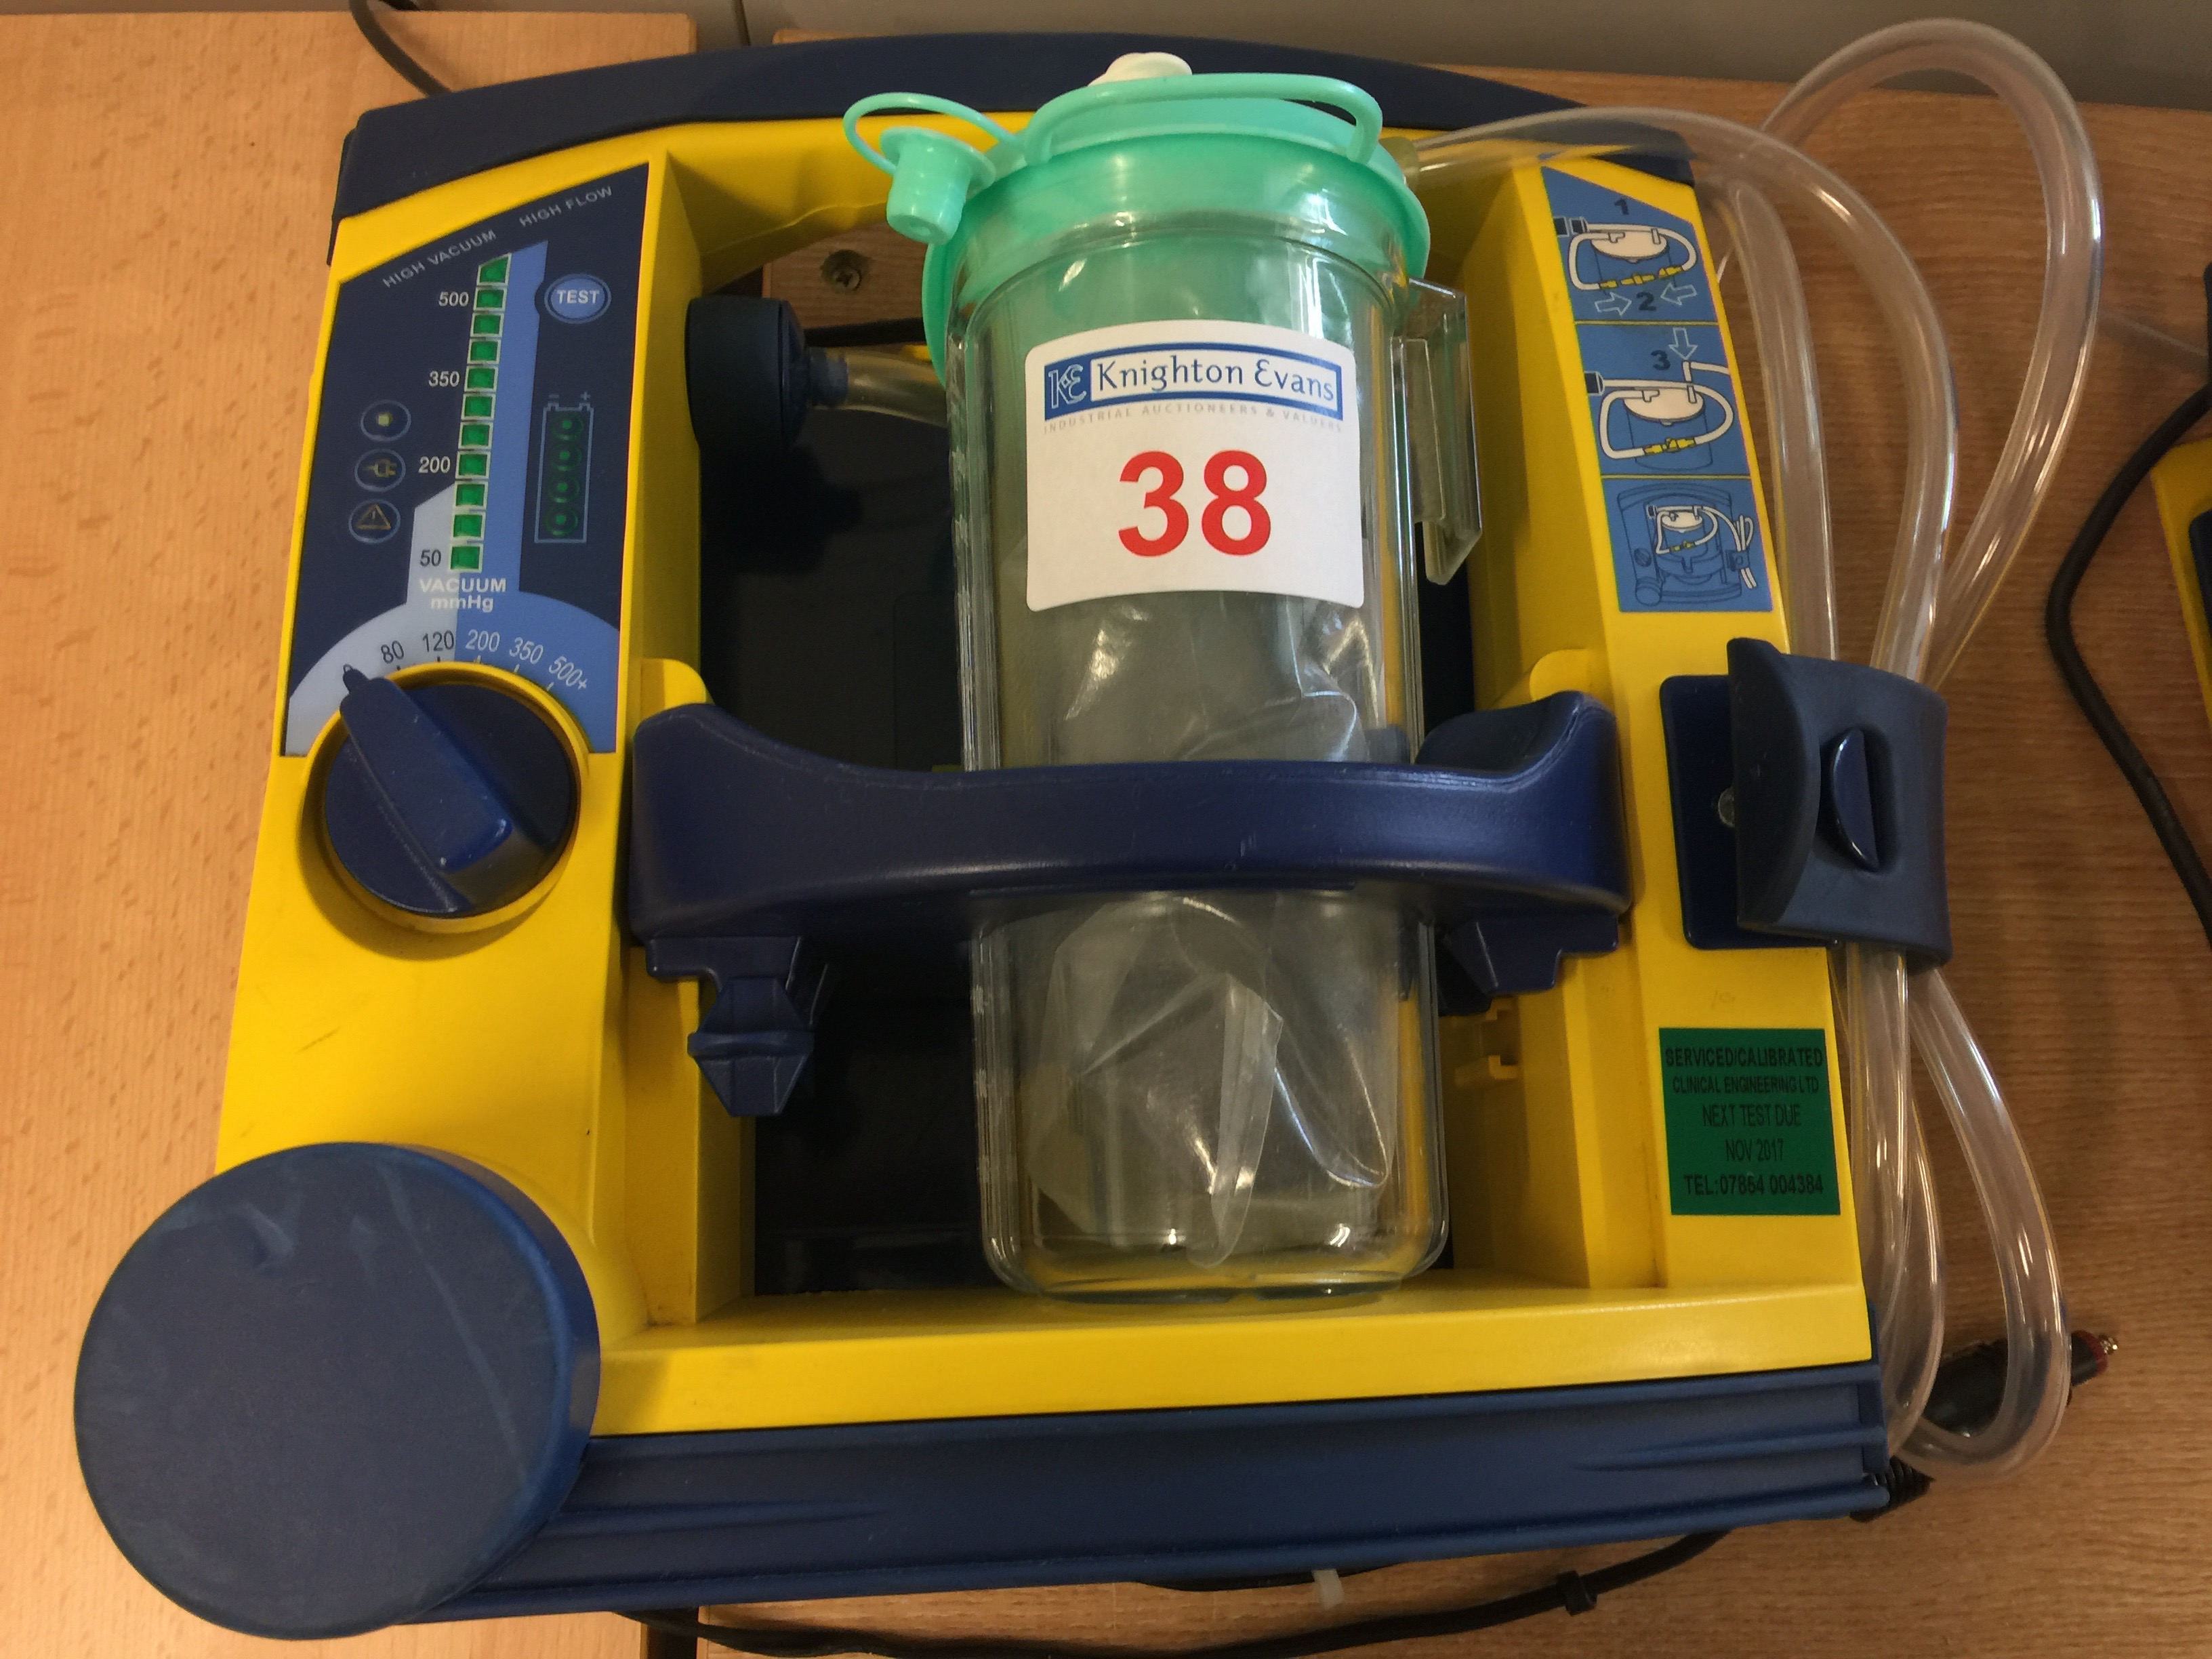 Lot 38 - Laerdal LSU portable suction unit with mounting plate and 12v charger, test due November 2017